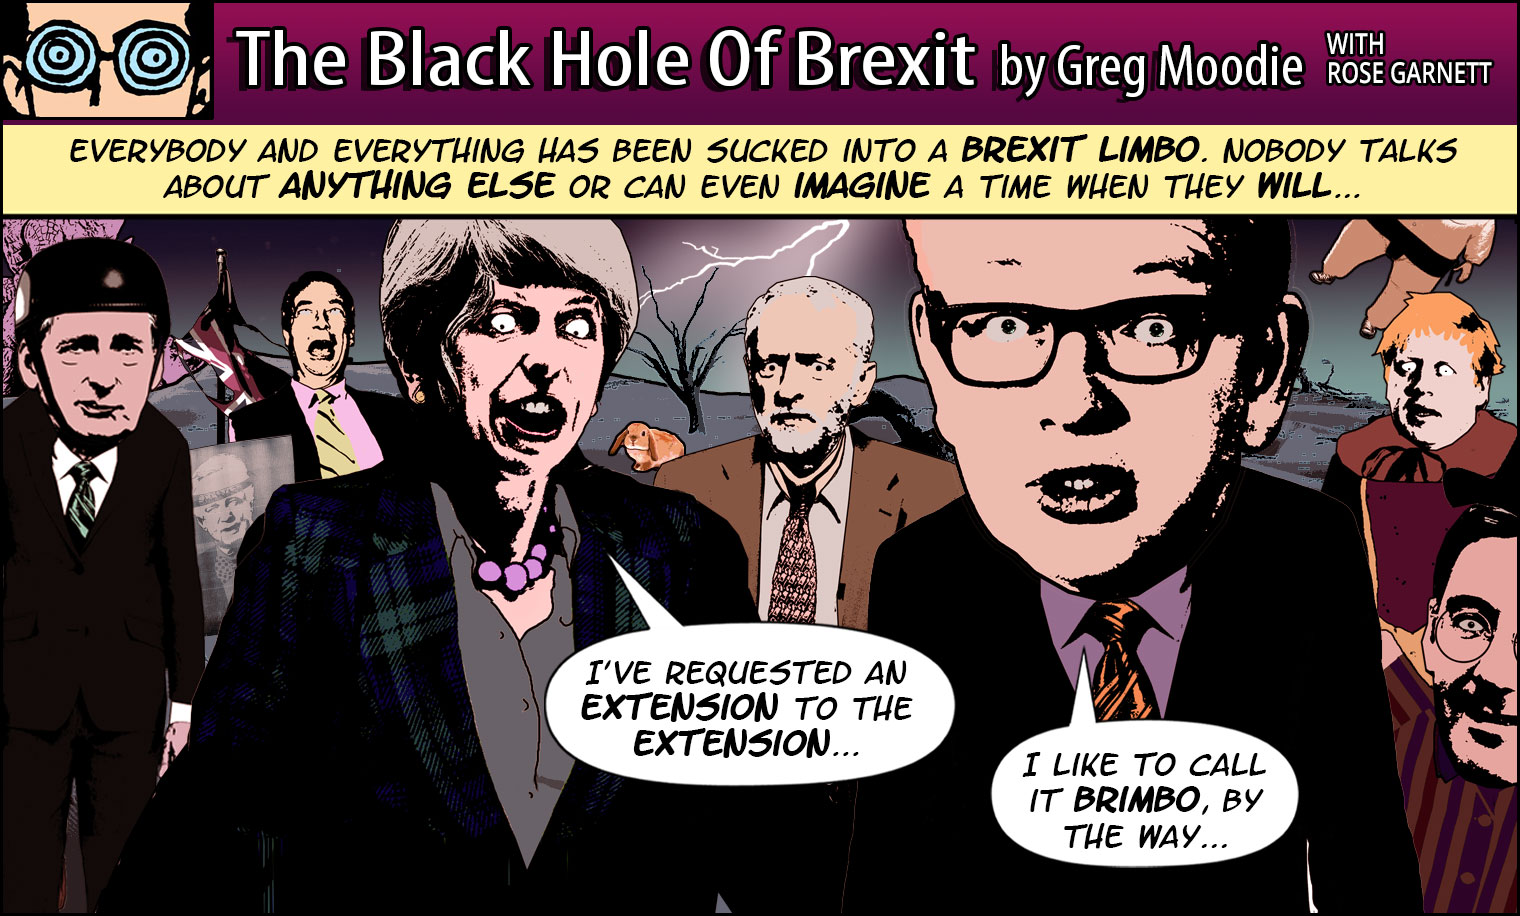 The Black Hole Of Brexit